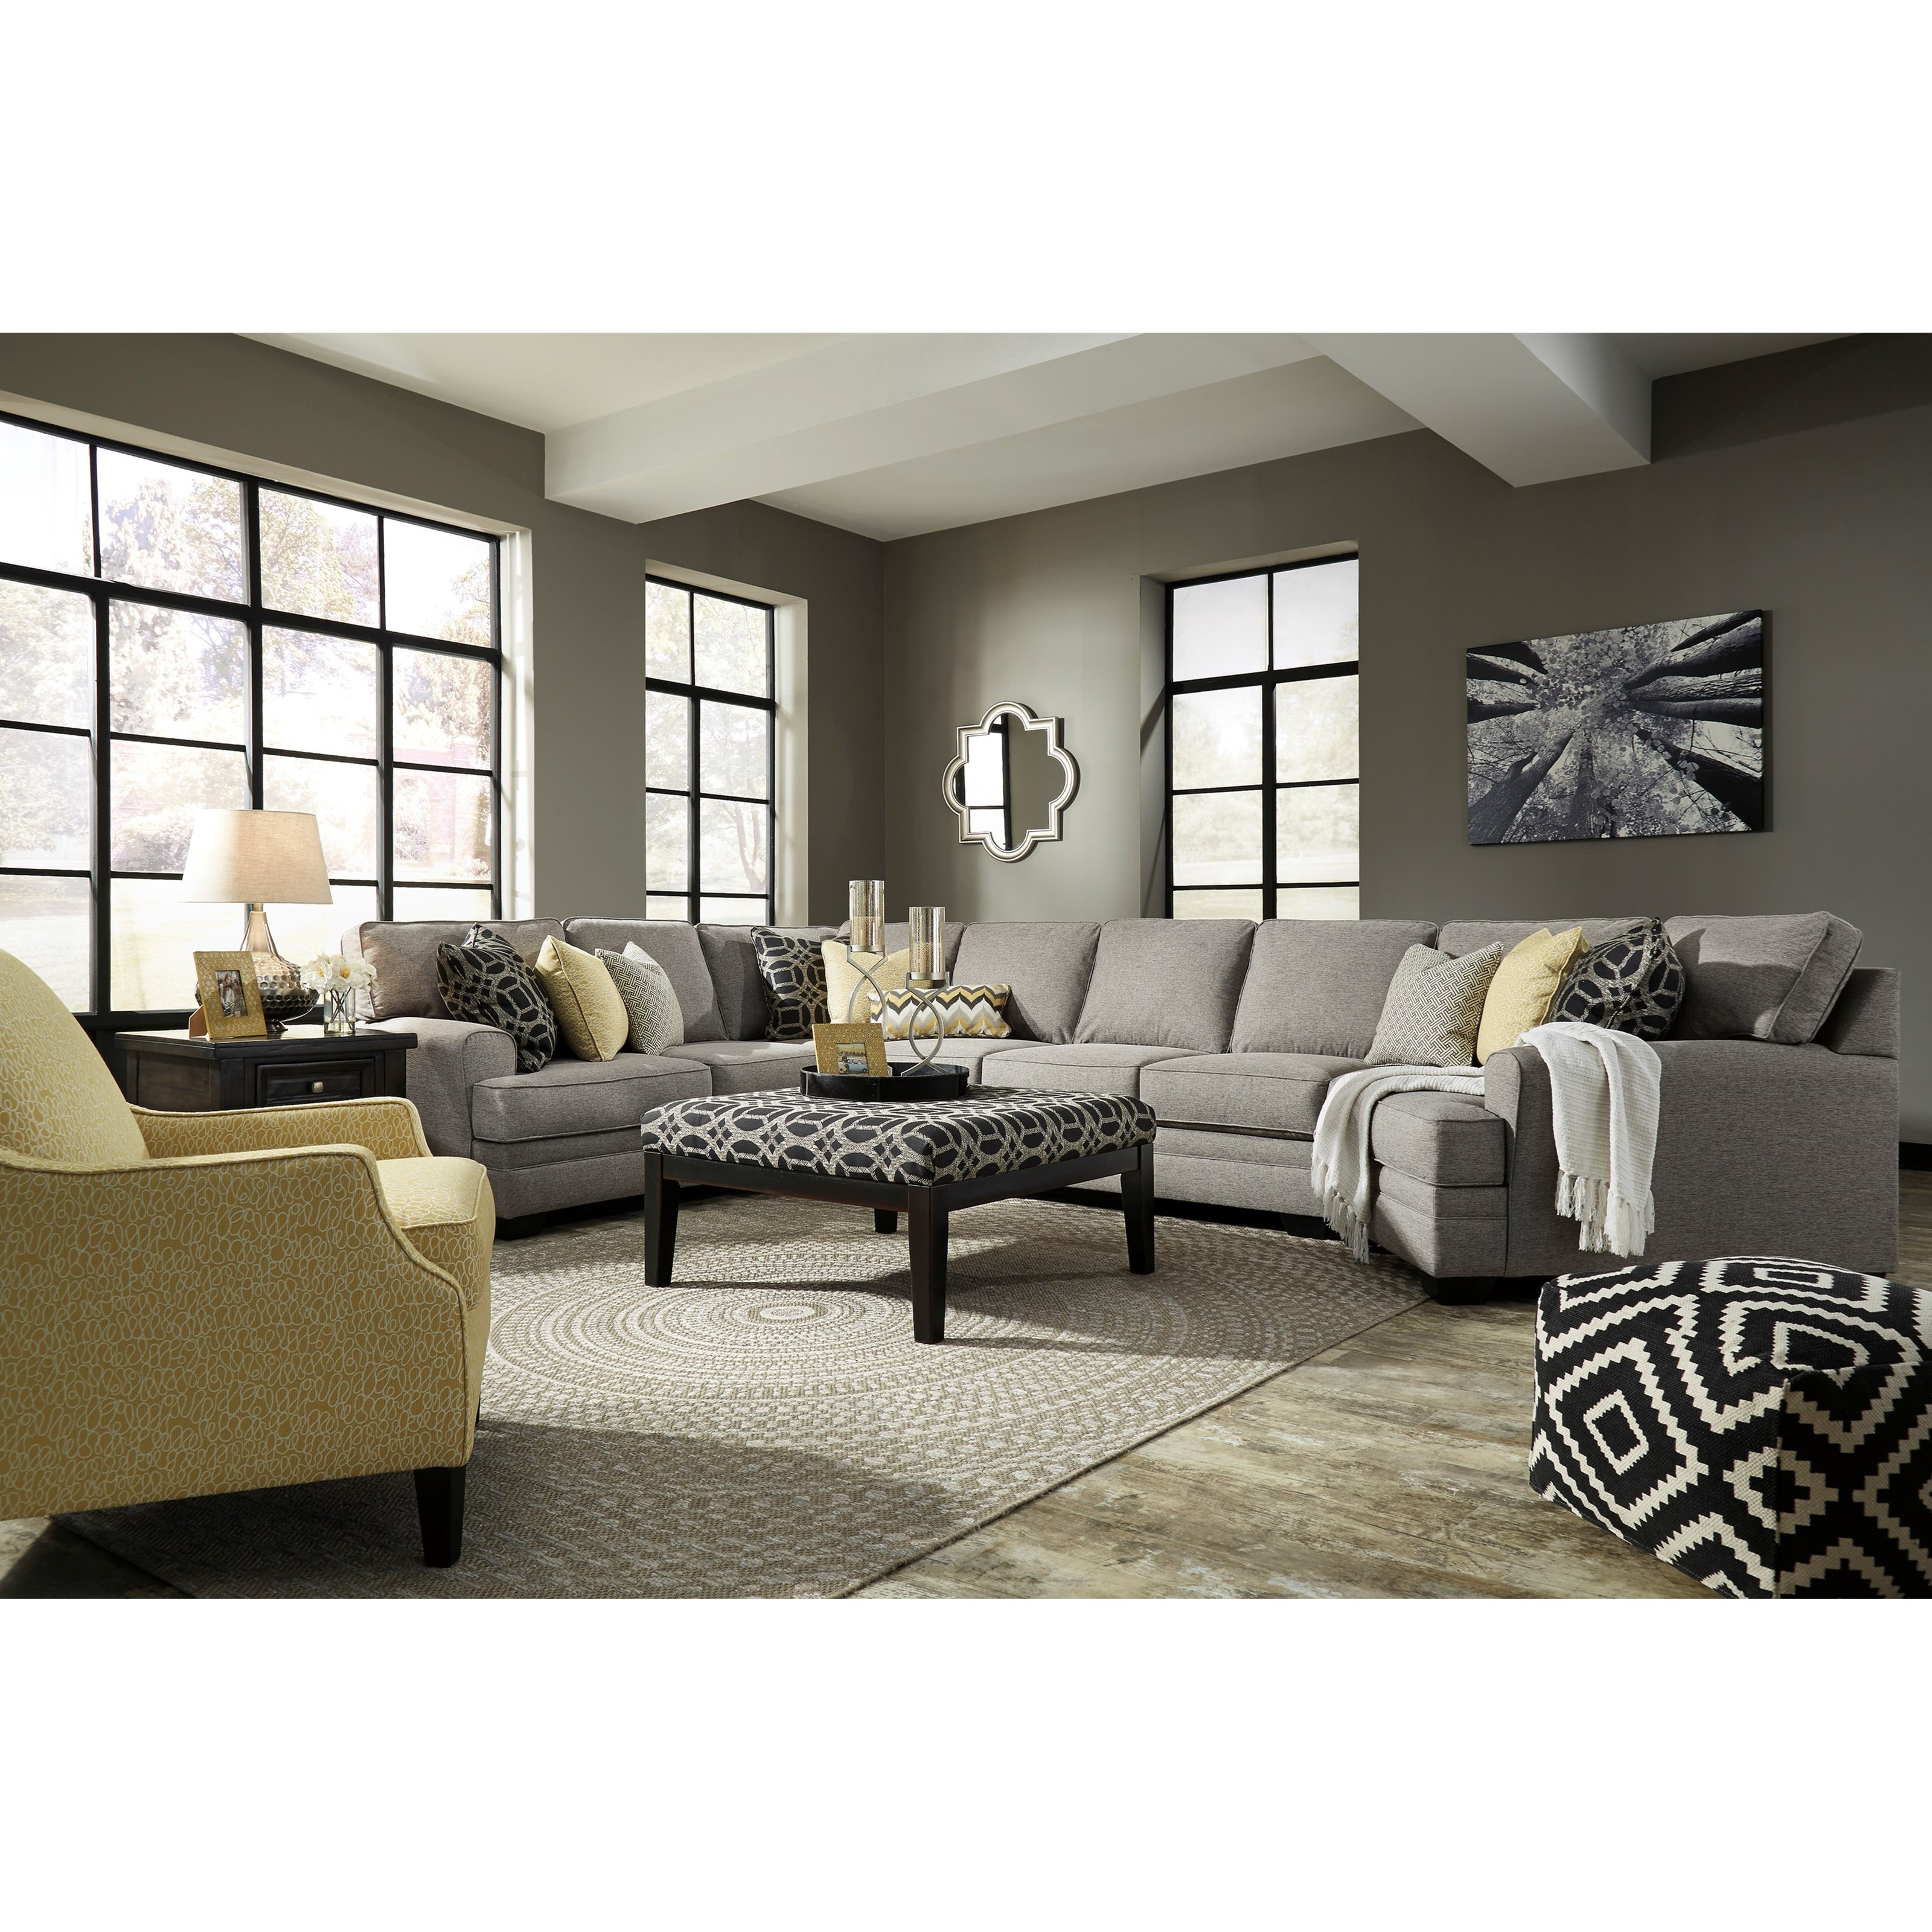 Benchcraft Cresson Stationary Living Room Group - Item Number: 54907 Living Room Group 24